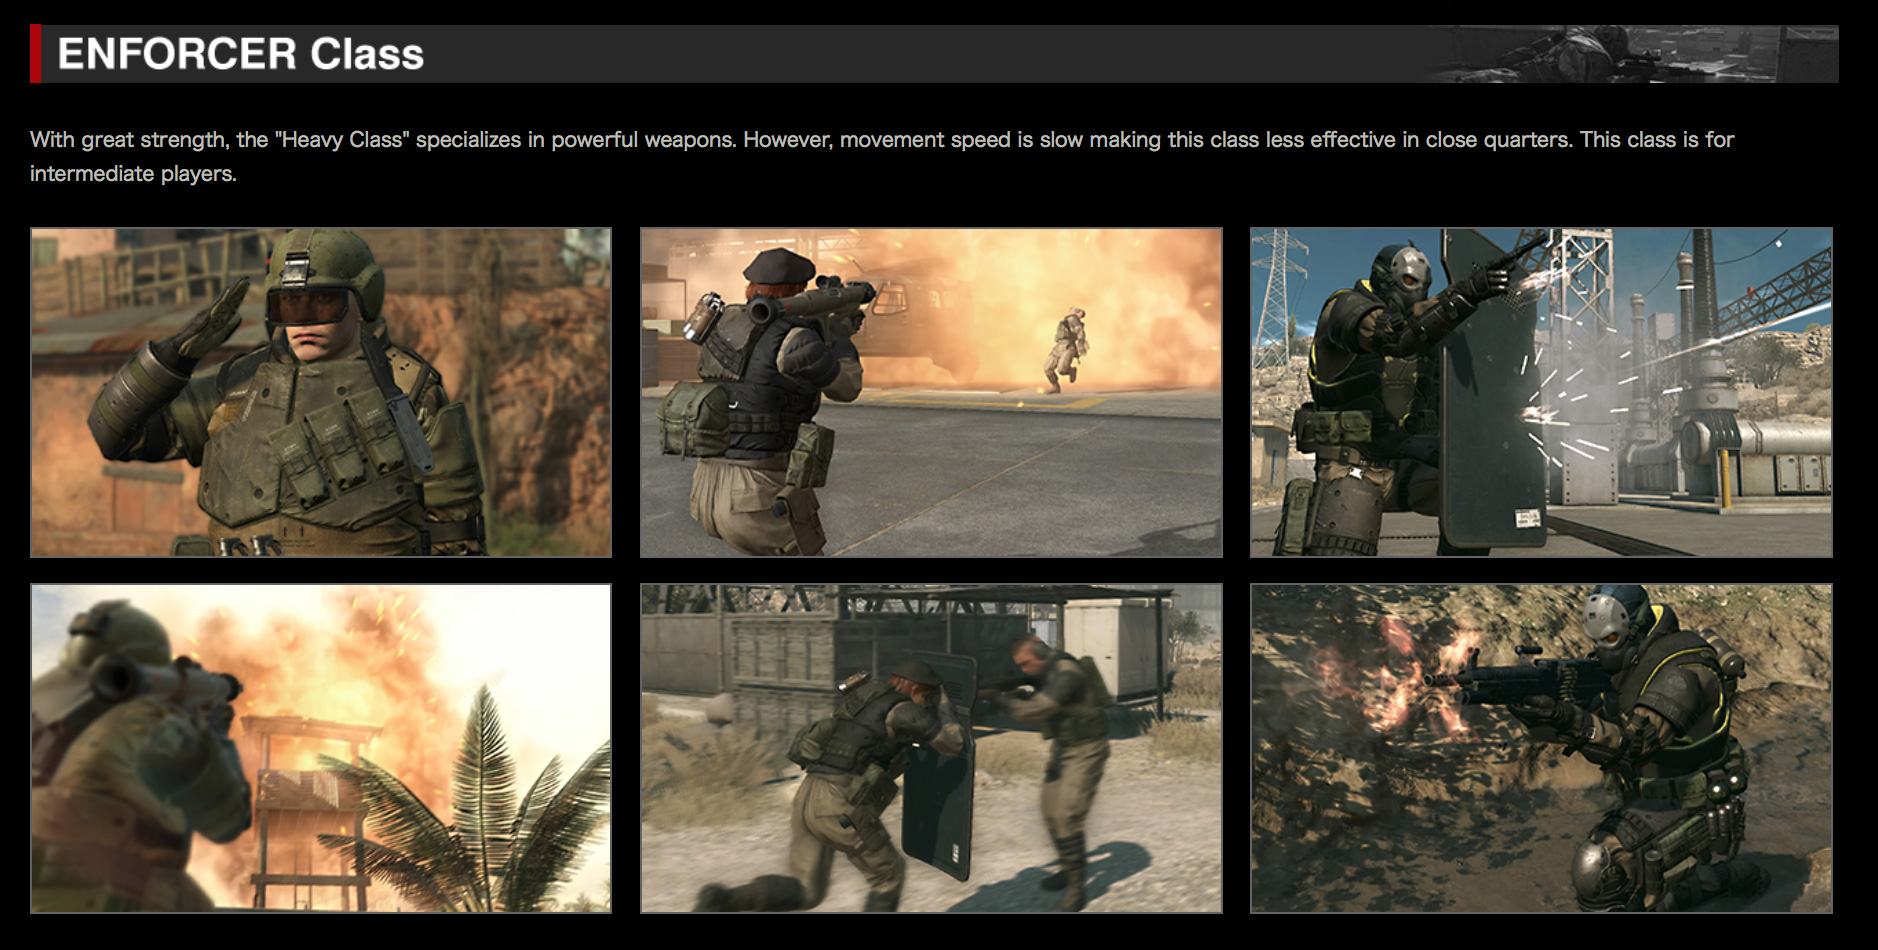 MGO-Classes-Enforcer-Class